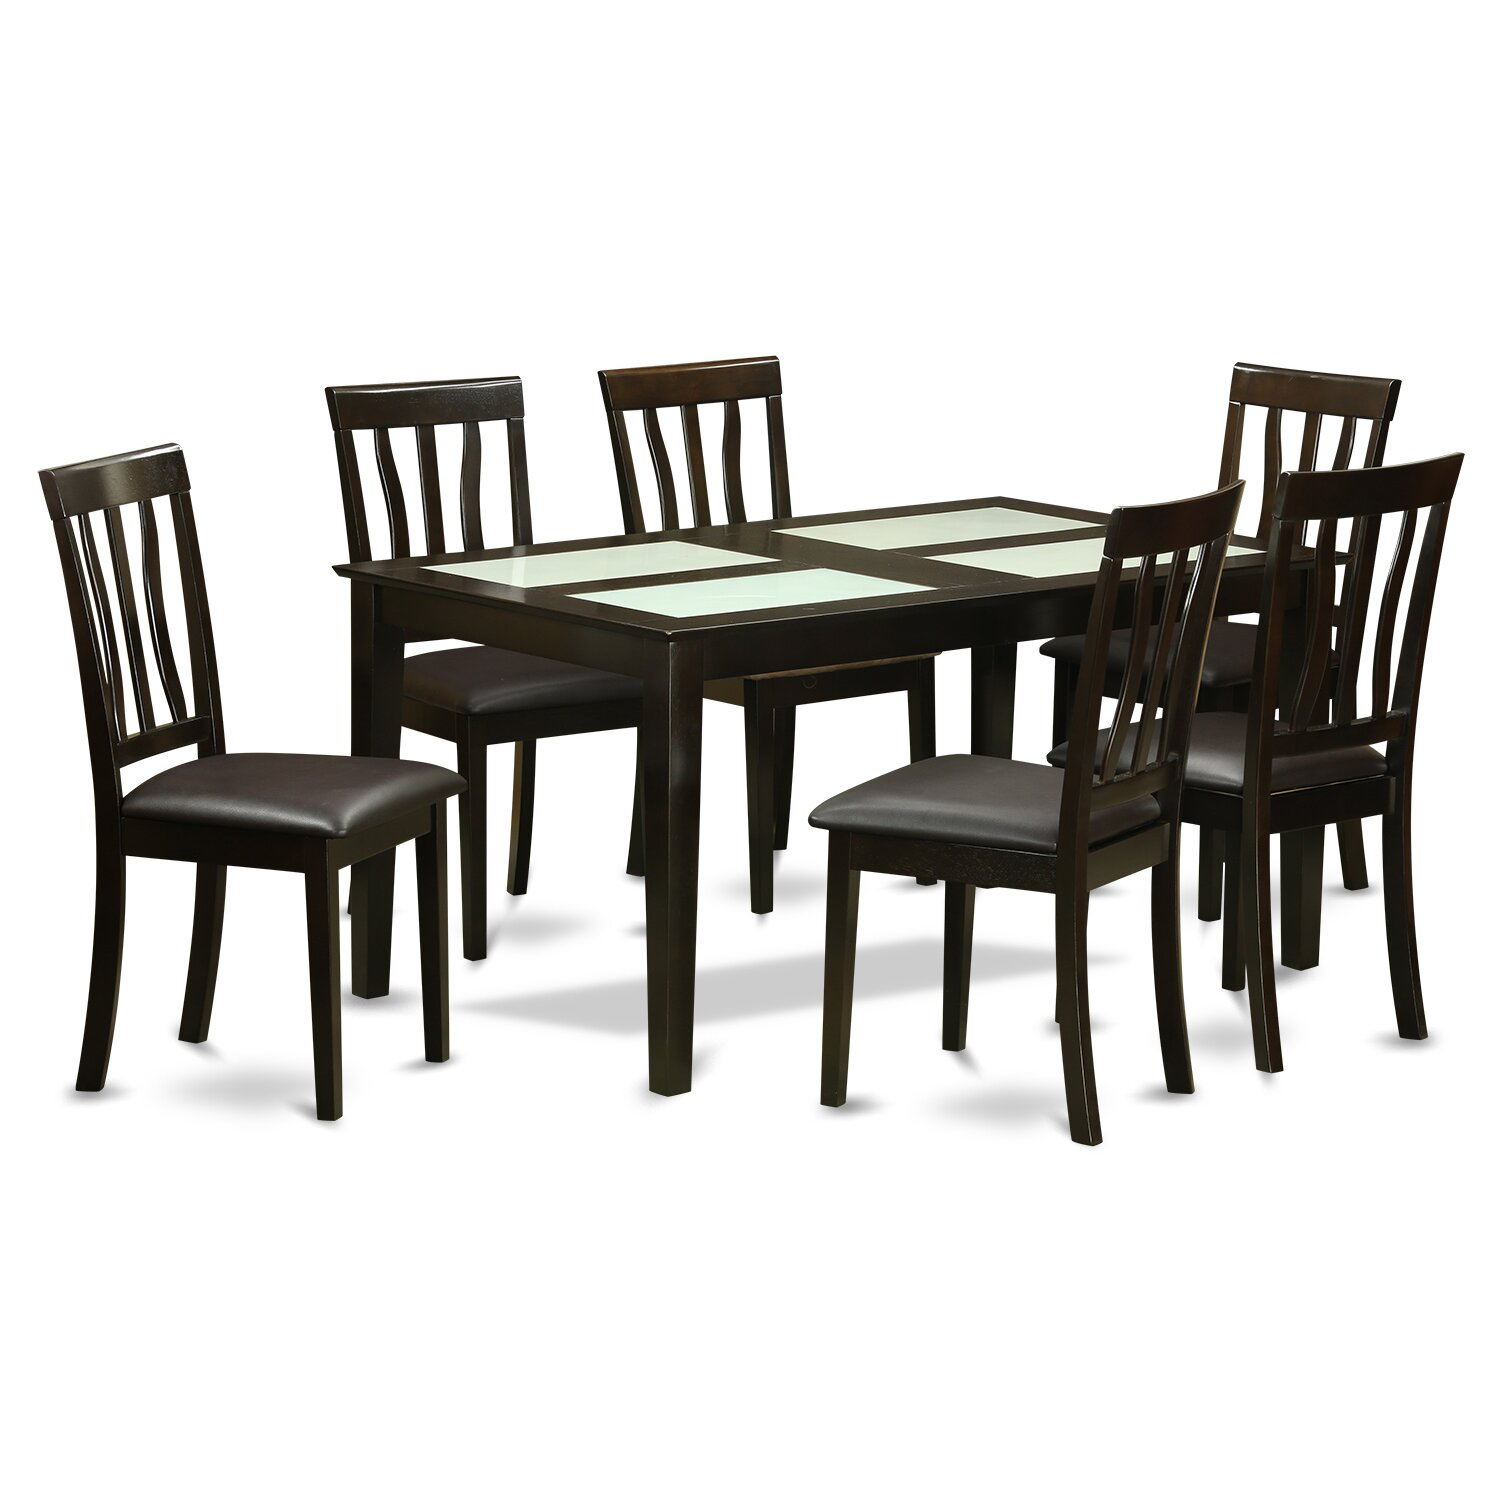 Wooden Importers 3 Piece Dining Set Reviews: Wooden Importers Capri 7 Piece Dining Set & Reviews